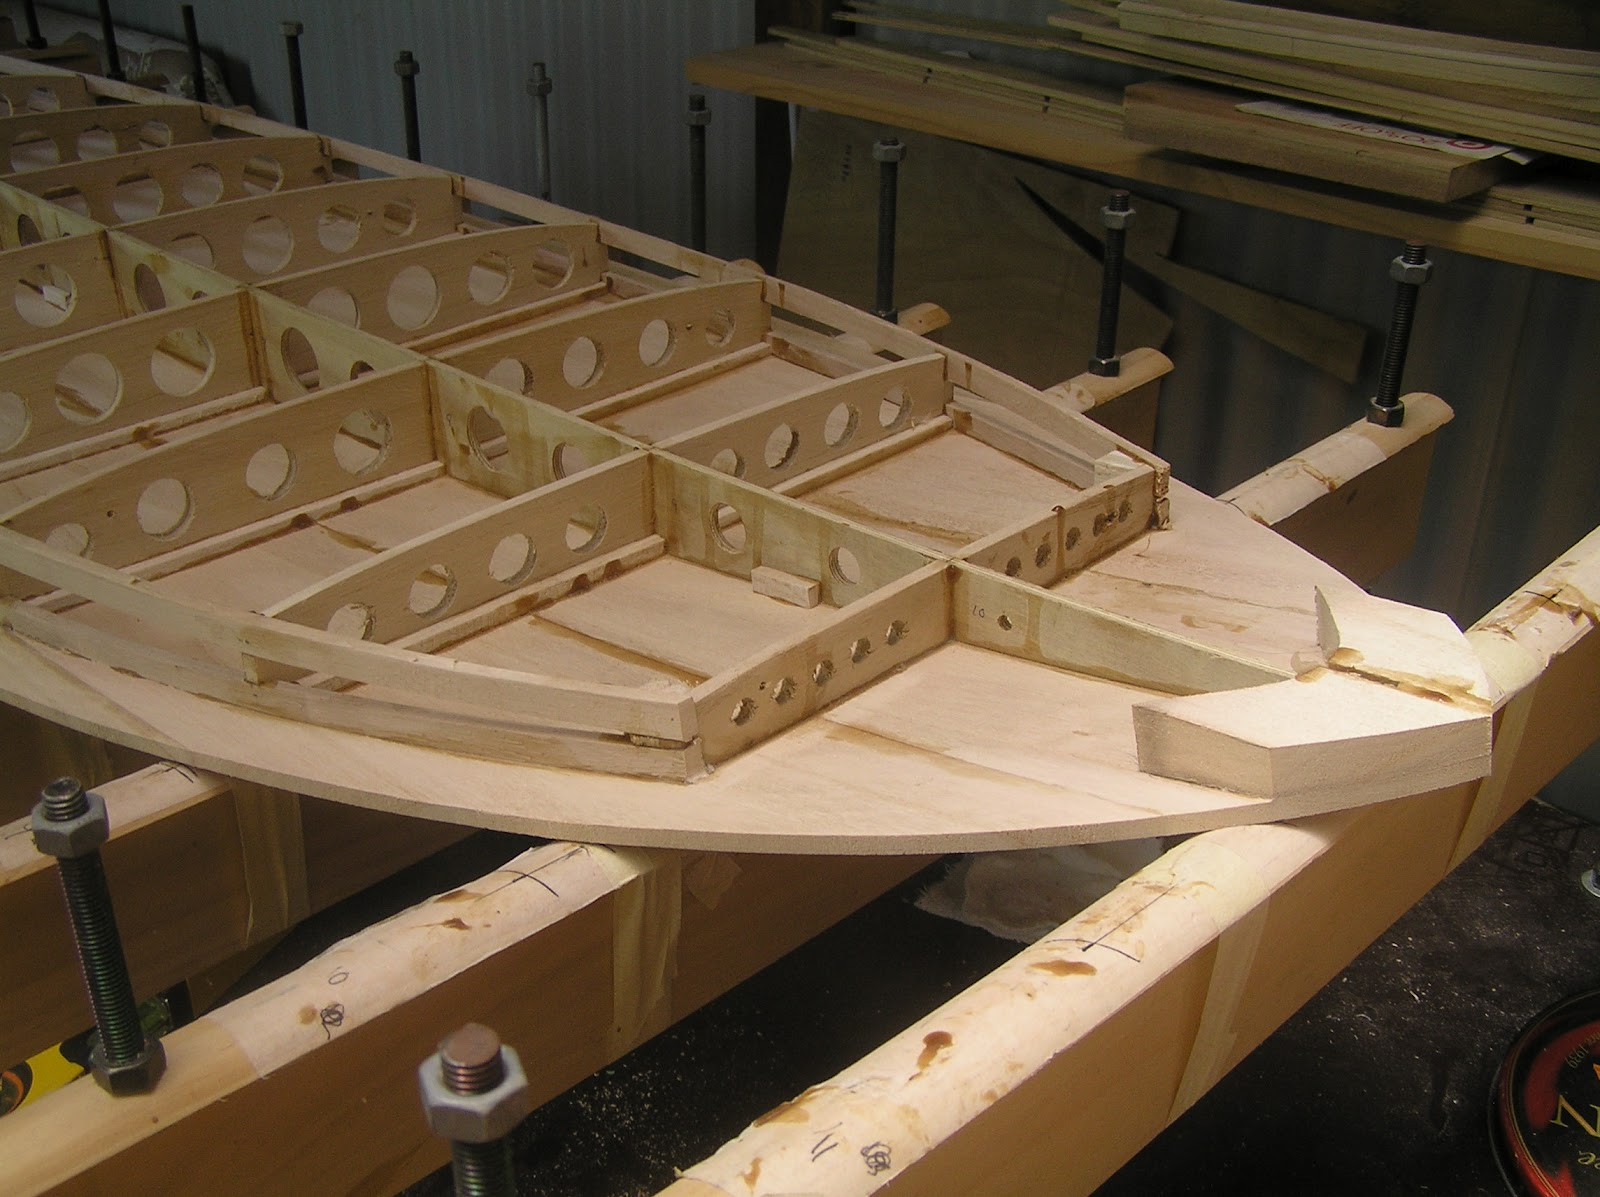 Hollow wood surfboard templates diy wood surfboard kits free 72 burnett wood surfboards wood surfboards wollumbin woodsticks pronofoot35fo Image collections